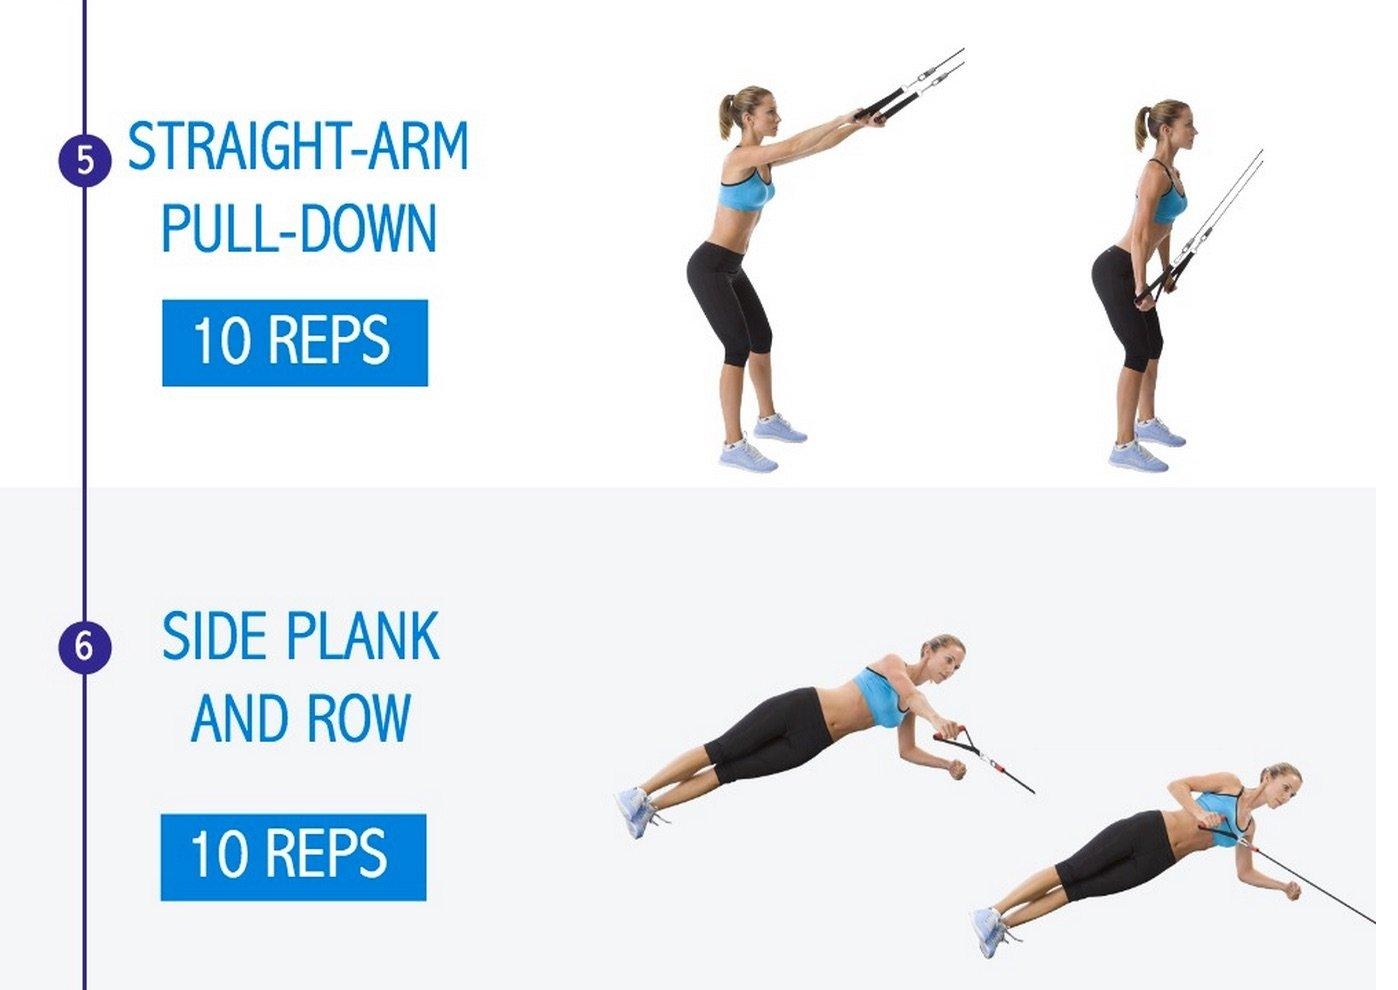 The Complete Workout Guide: How to Get Rid of Back Fat in the Next 90 Days